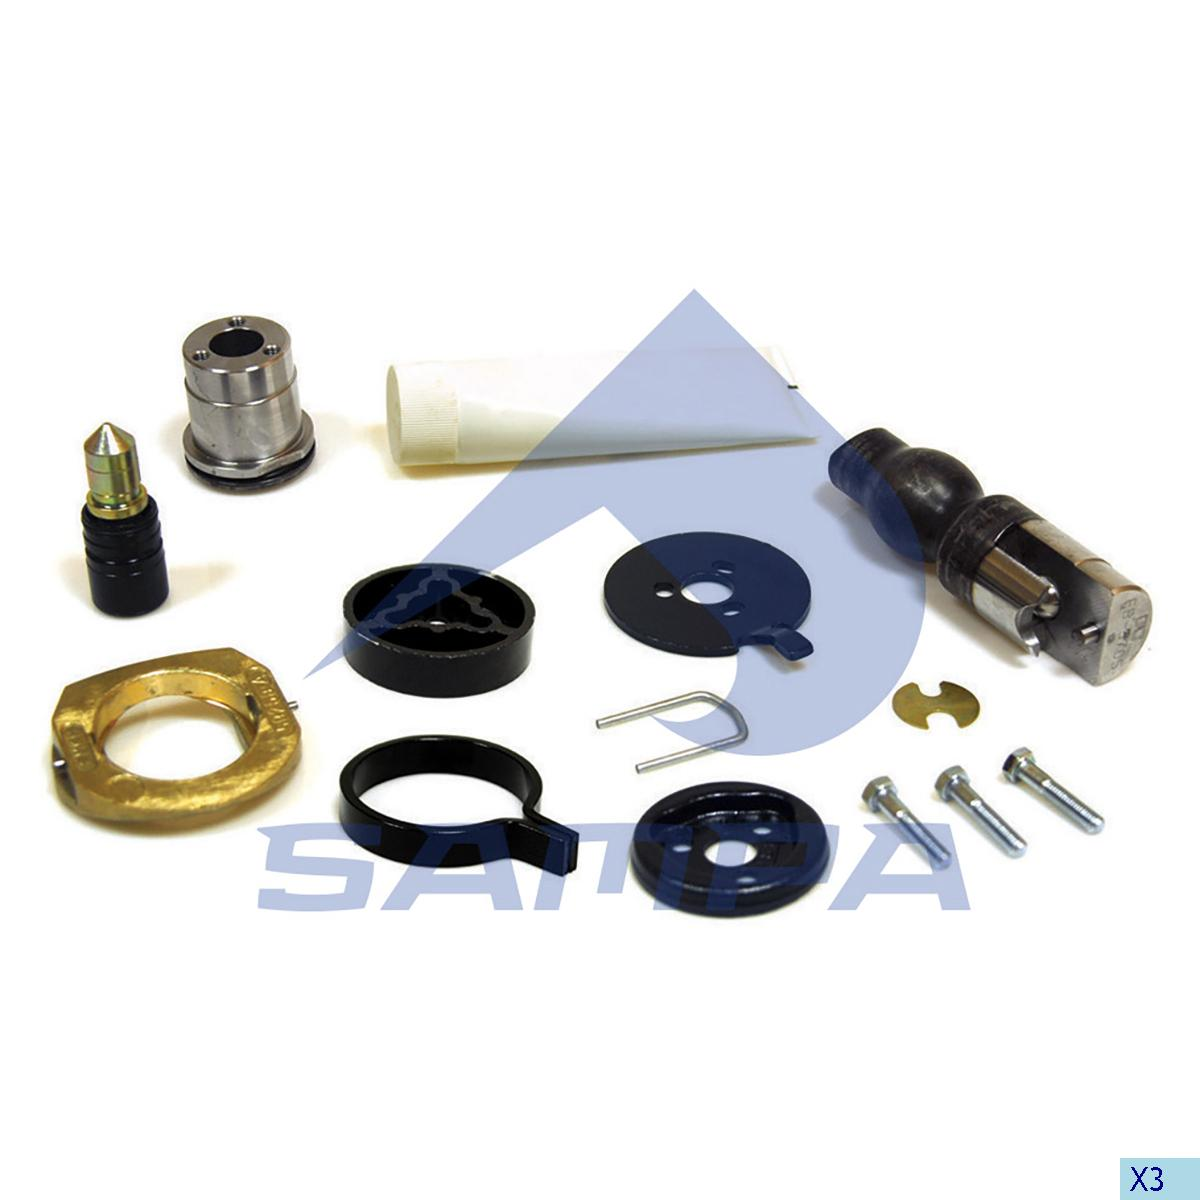 Repair Kit, Trailer Coupling, Rockinger, Complementary Equipment